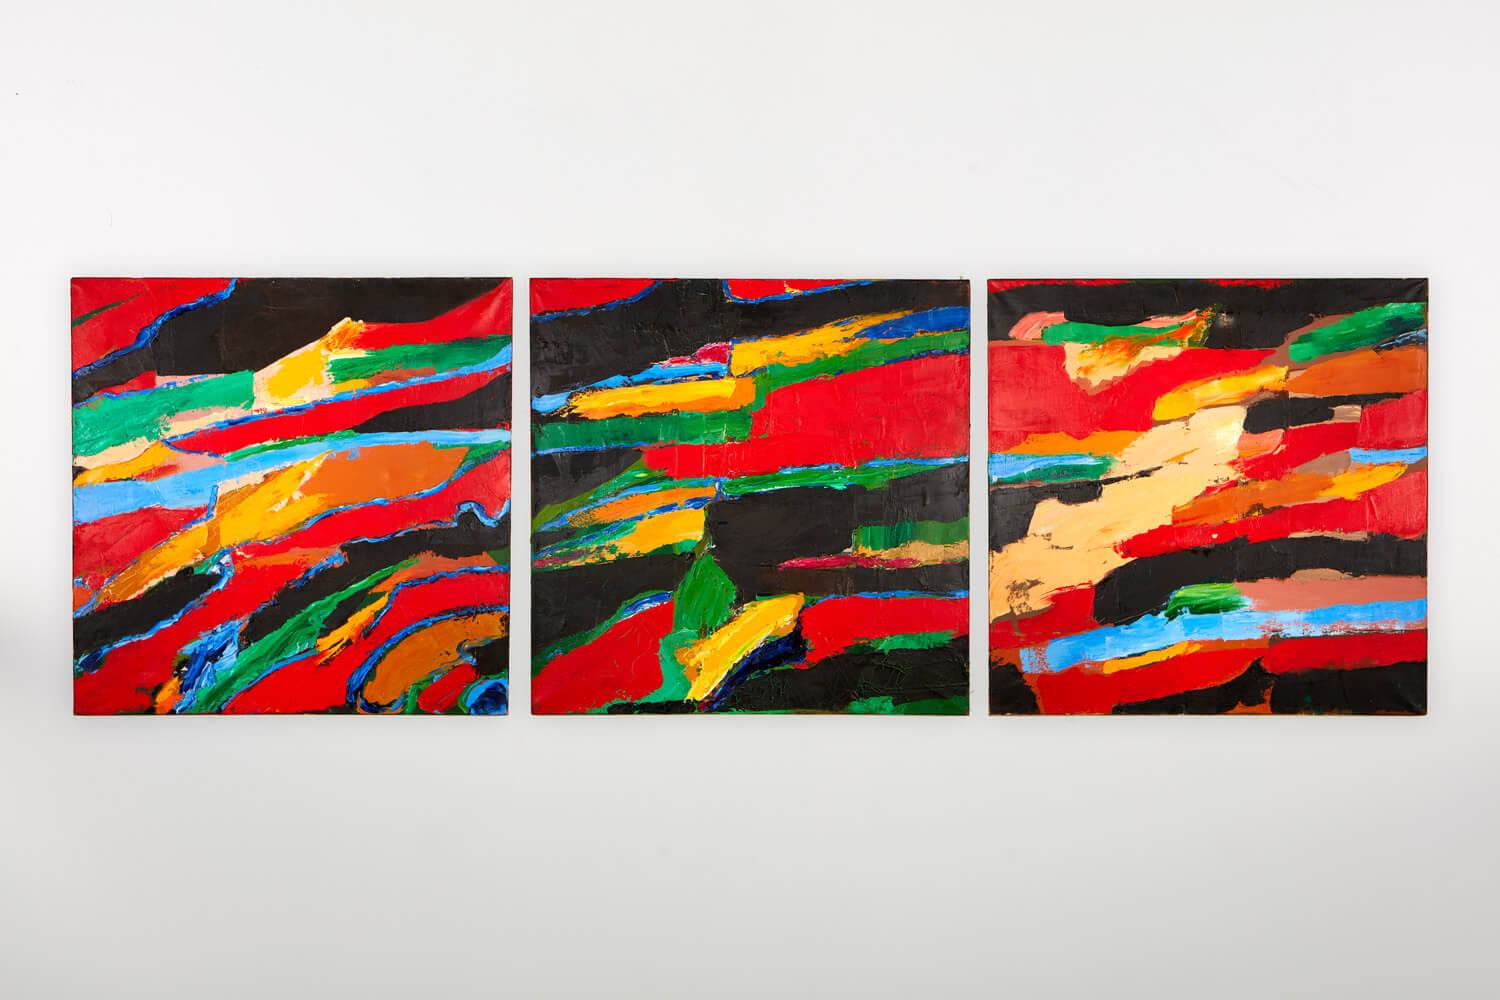 JB203 - Triptych 3 Canvases - 1993 - 76.5 x 76 cm - Oil on canvas